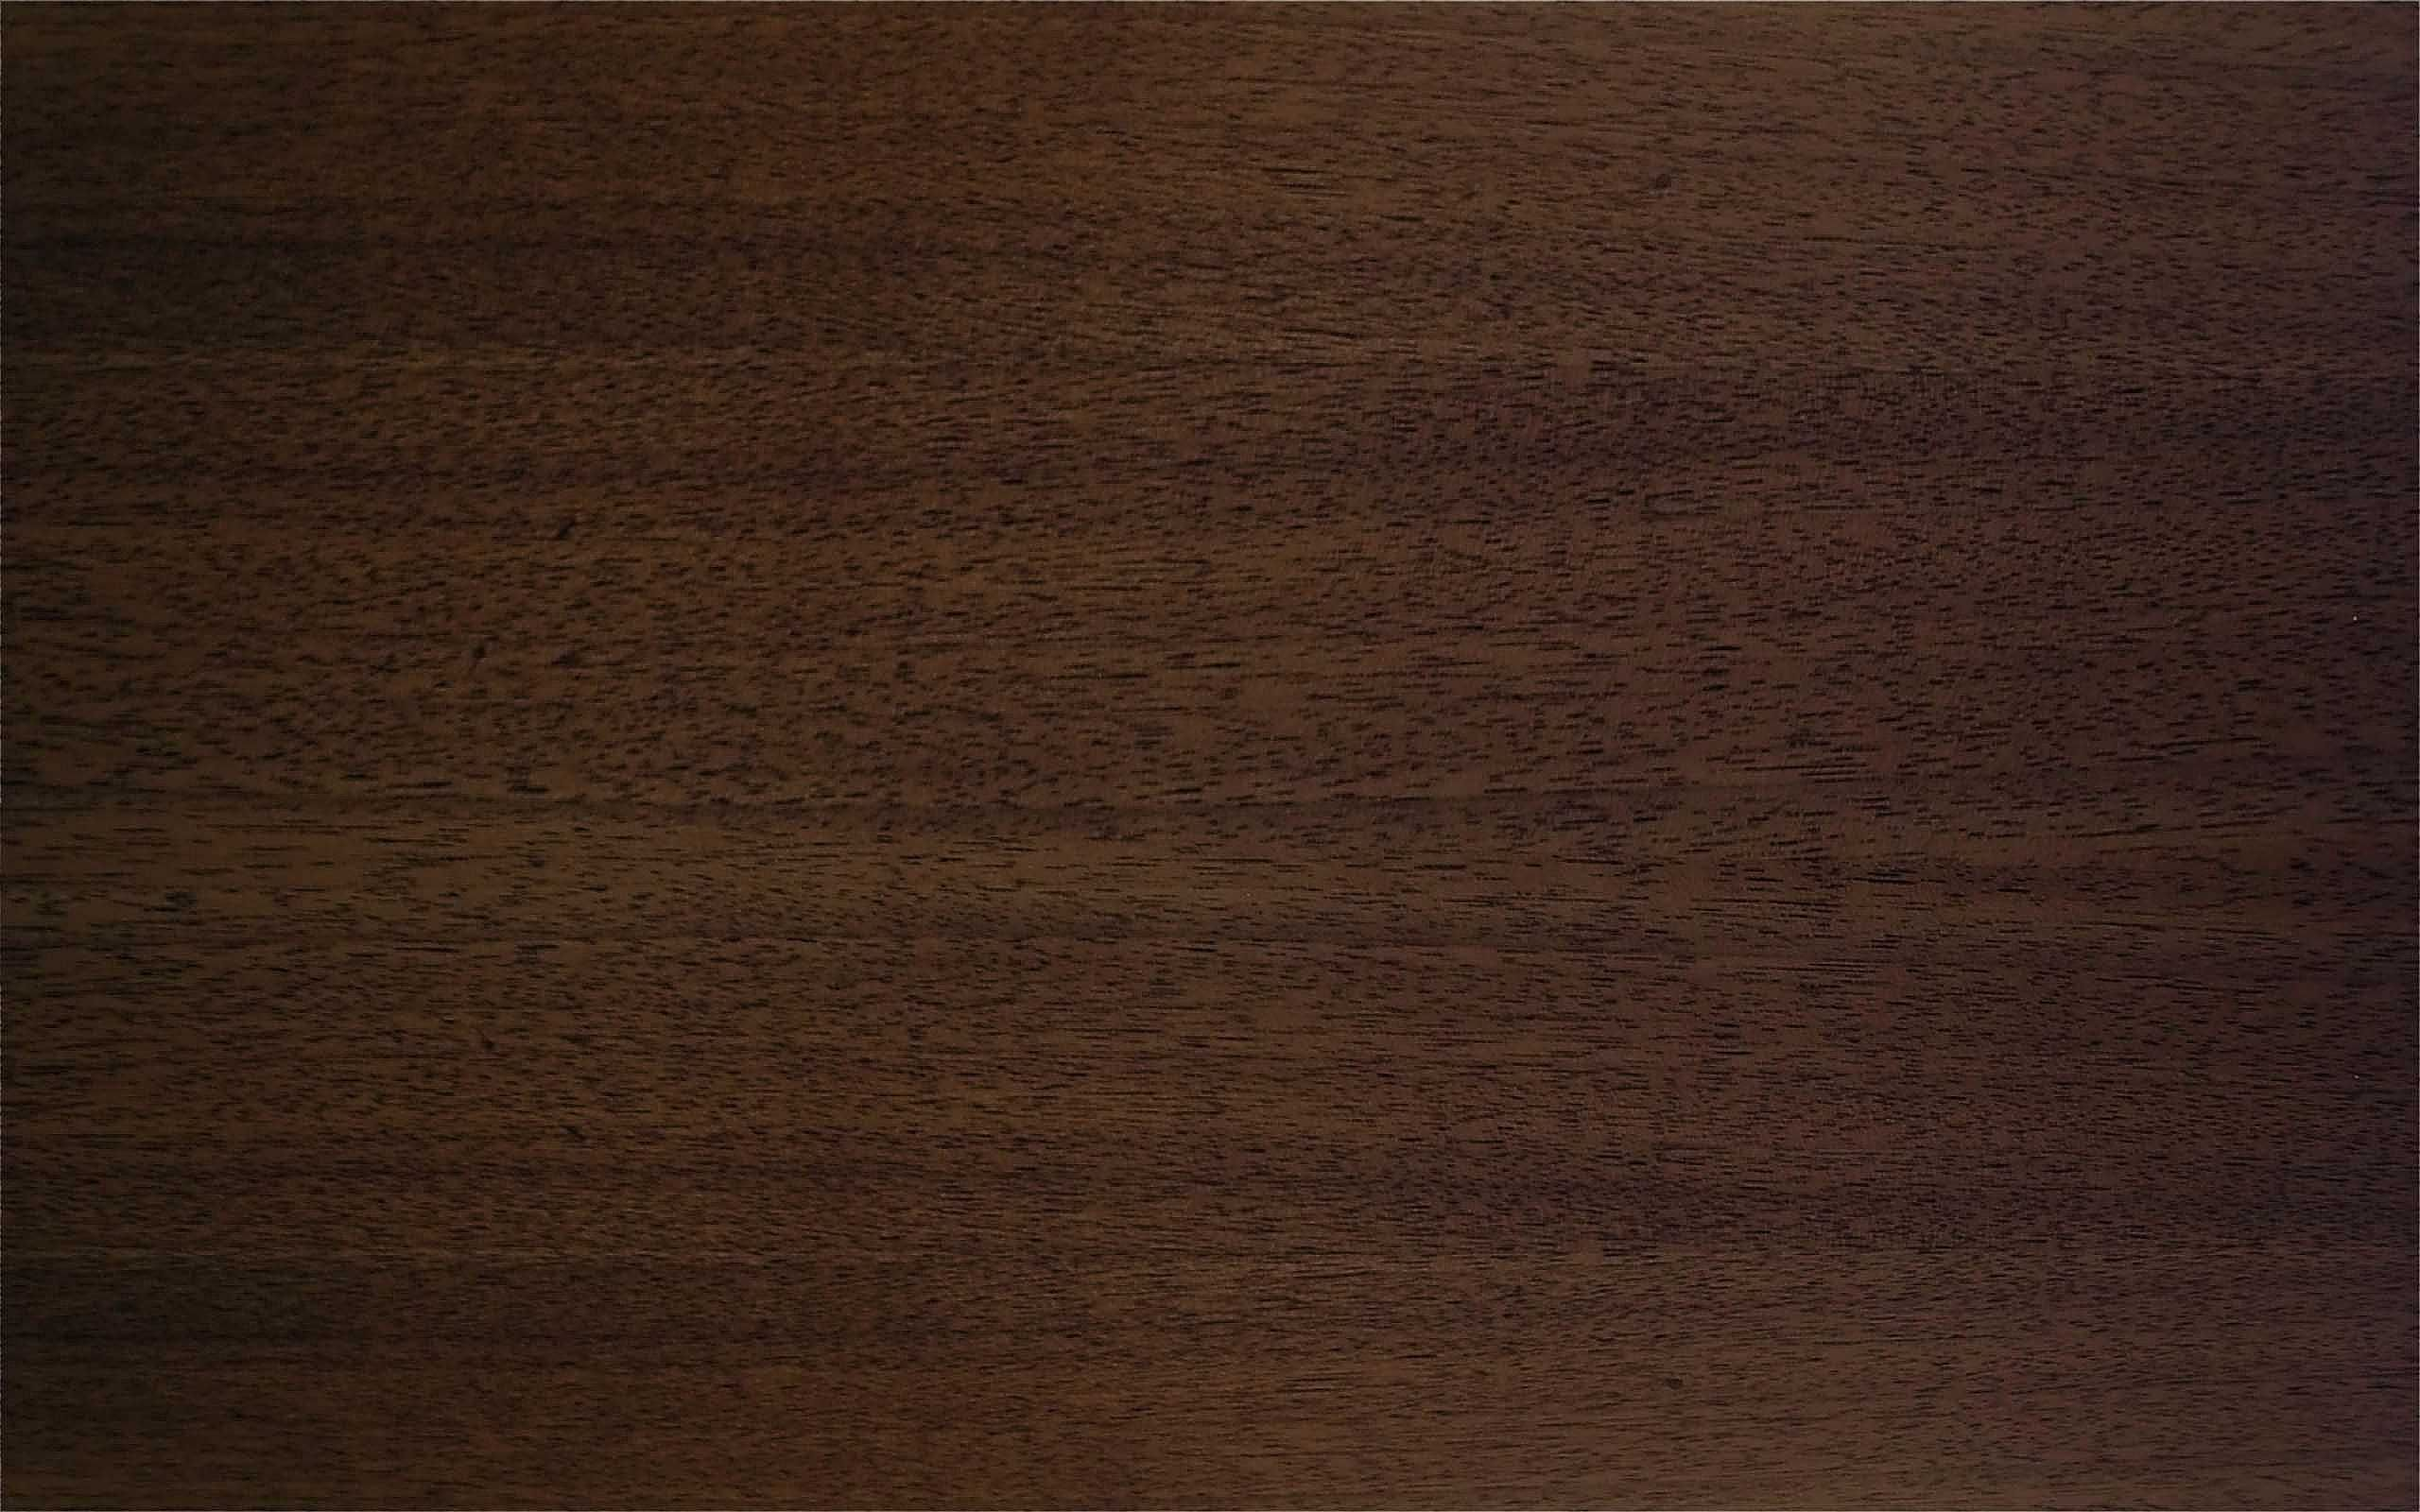 Dark Walnut Texture Bing Images Side Chairs Dining